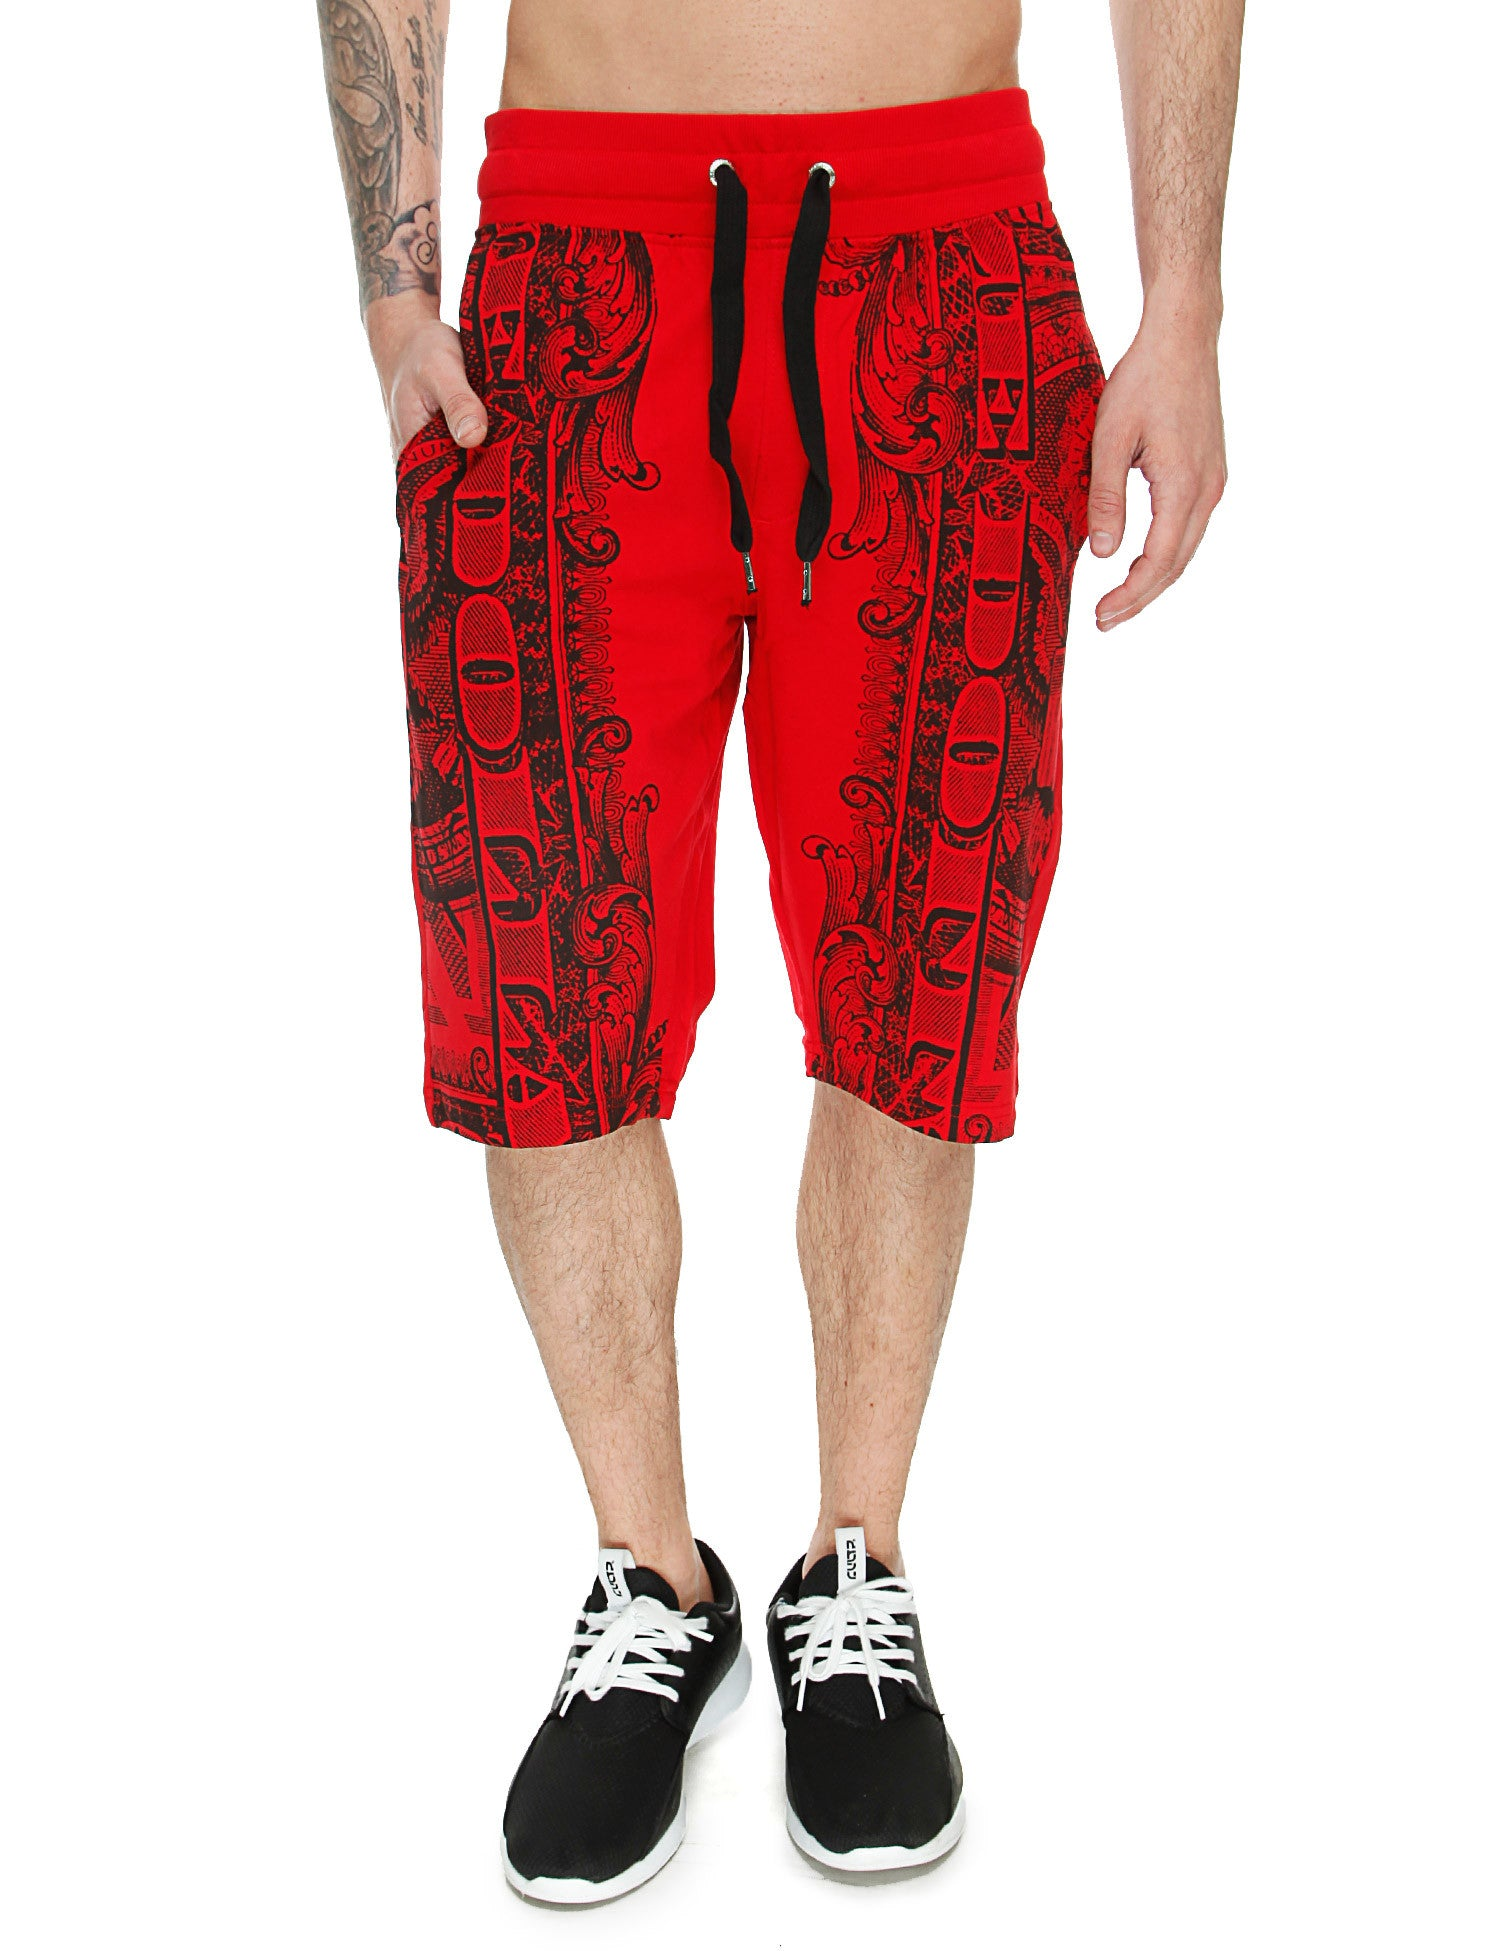 Switch Money Print Shorts SS6440 Red